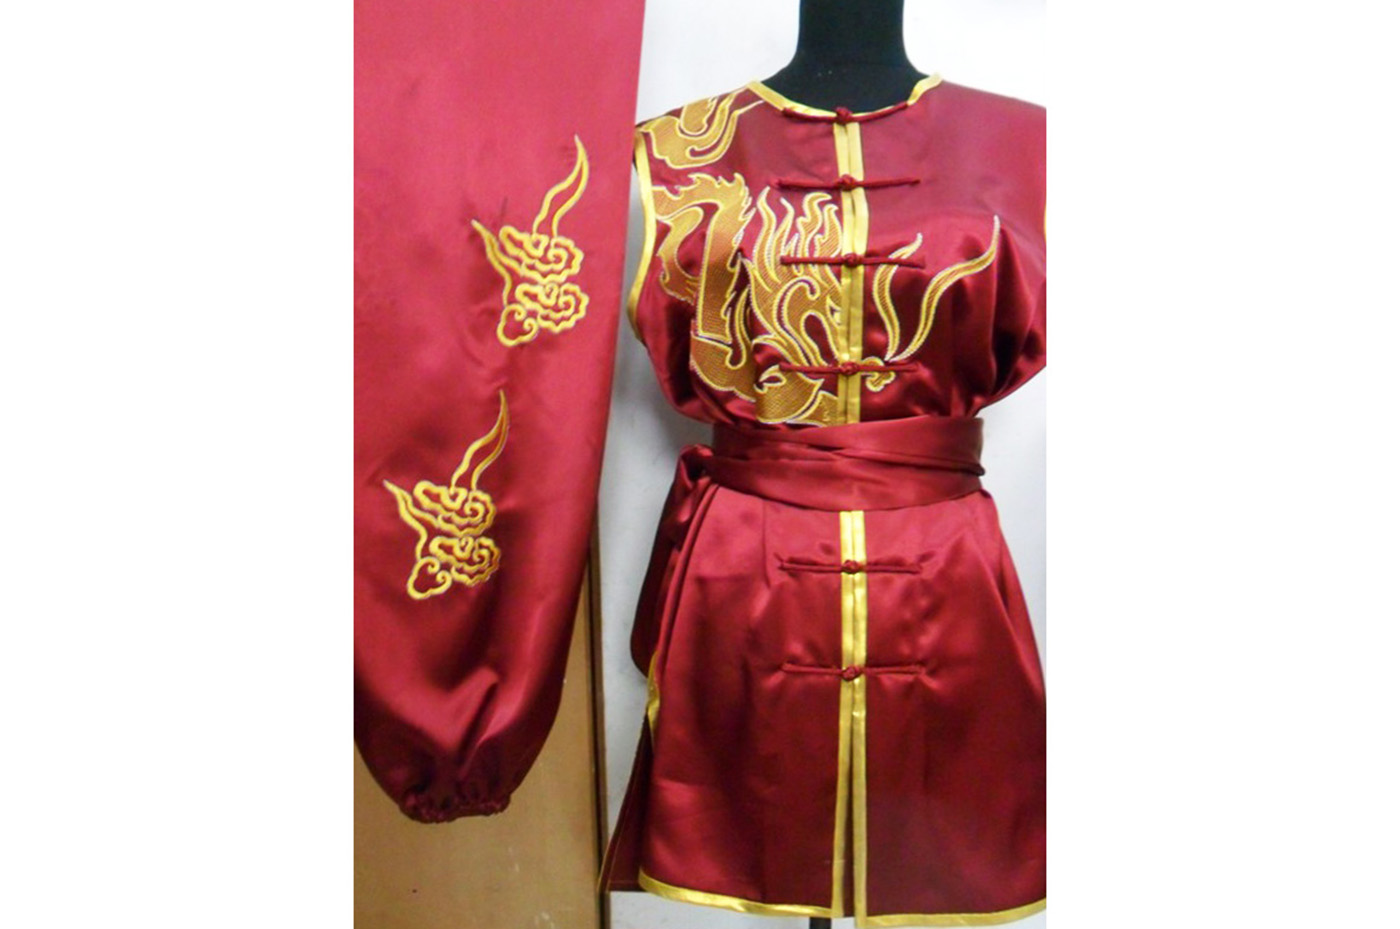 Tenue Brodée, Nan Quan Dragon 2